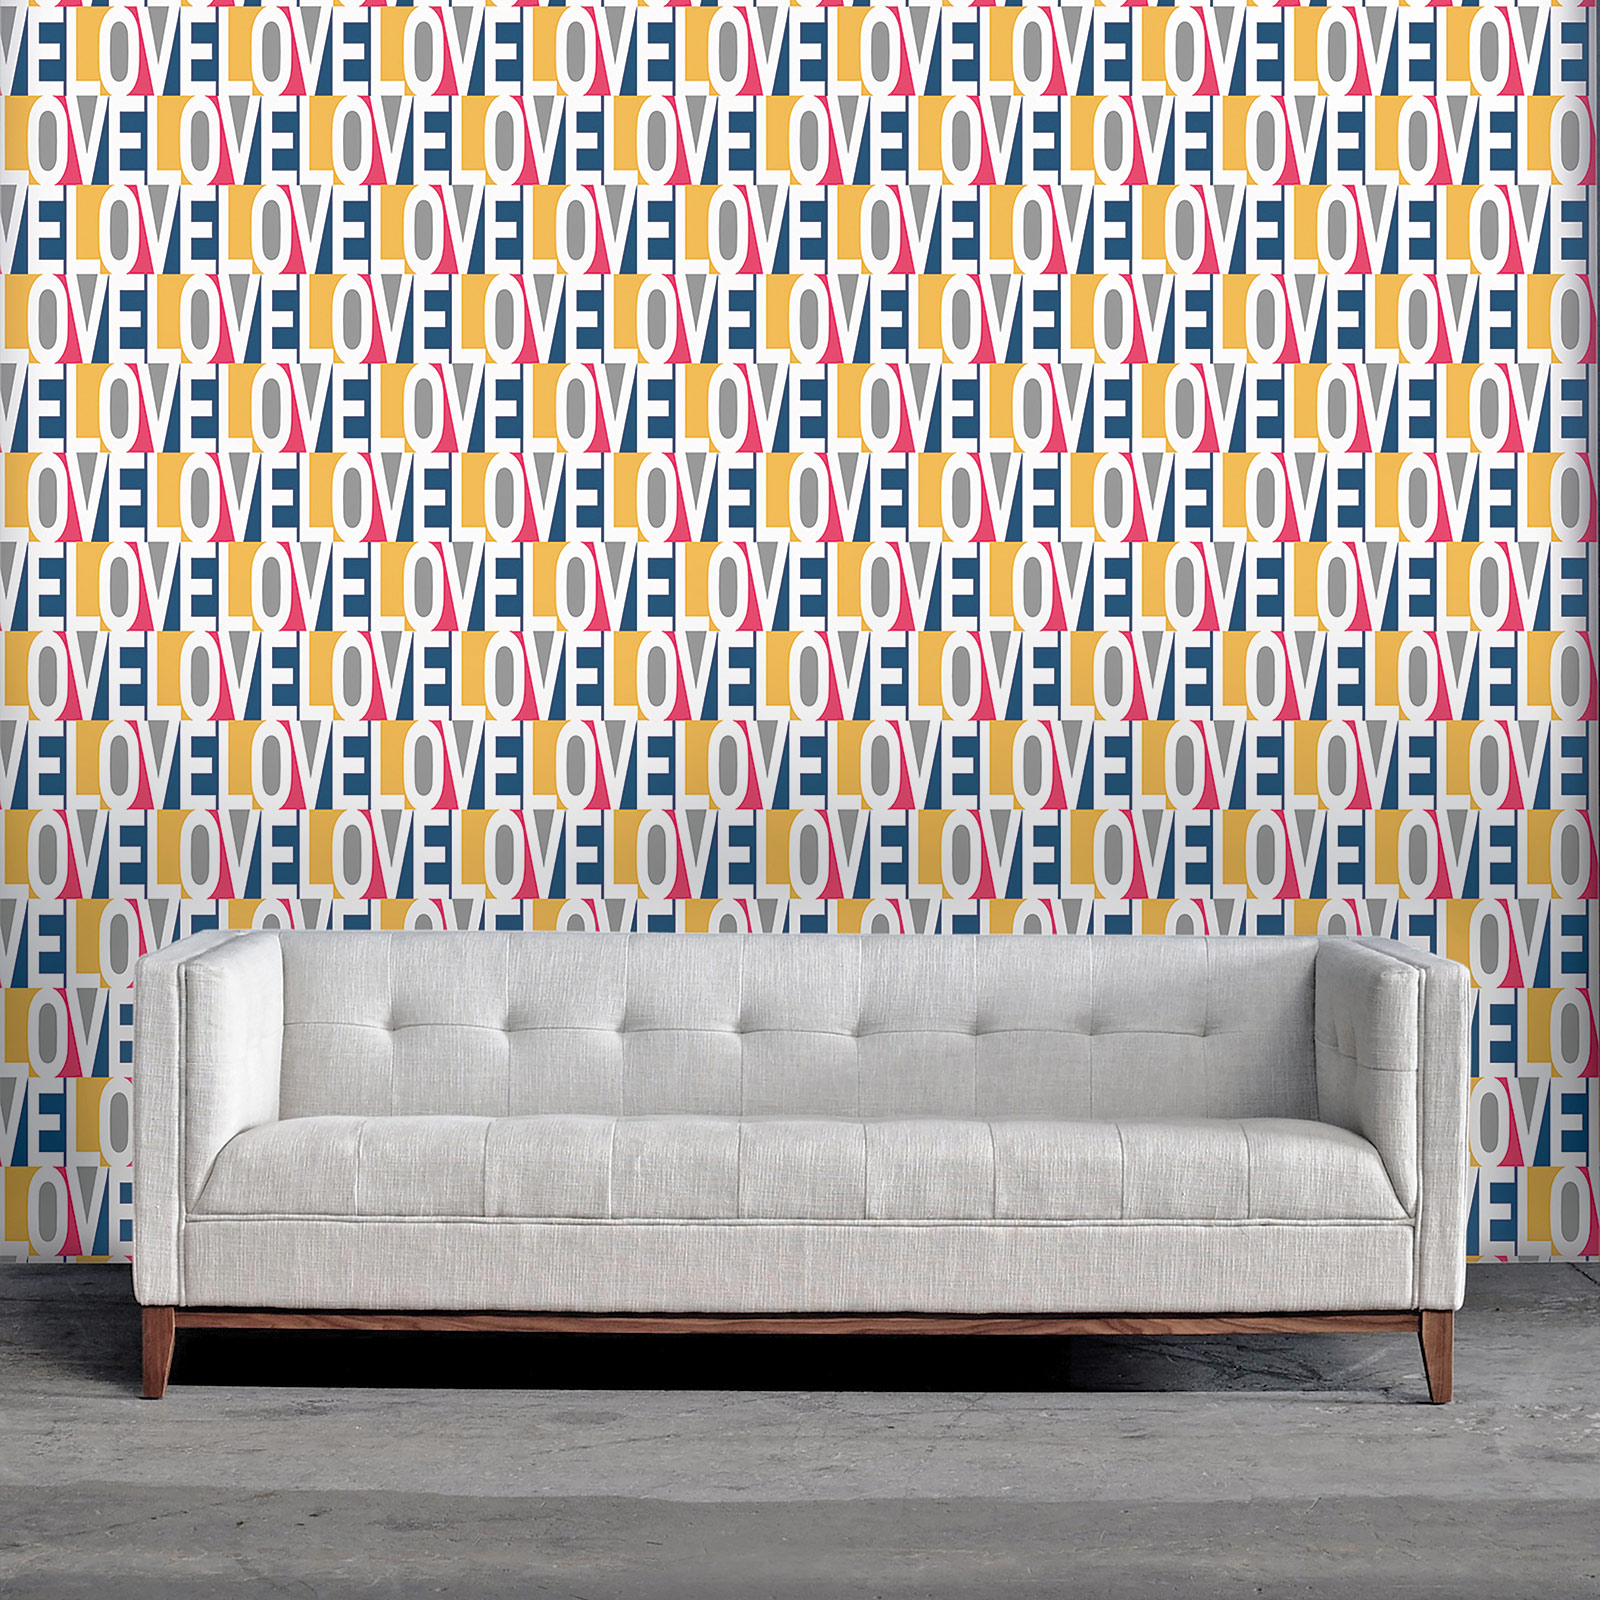 Love Modern Classic Pink Blue Orange Grey Removable Wallpaper